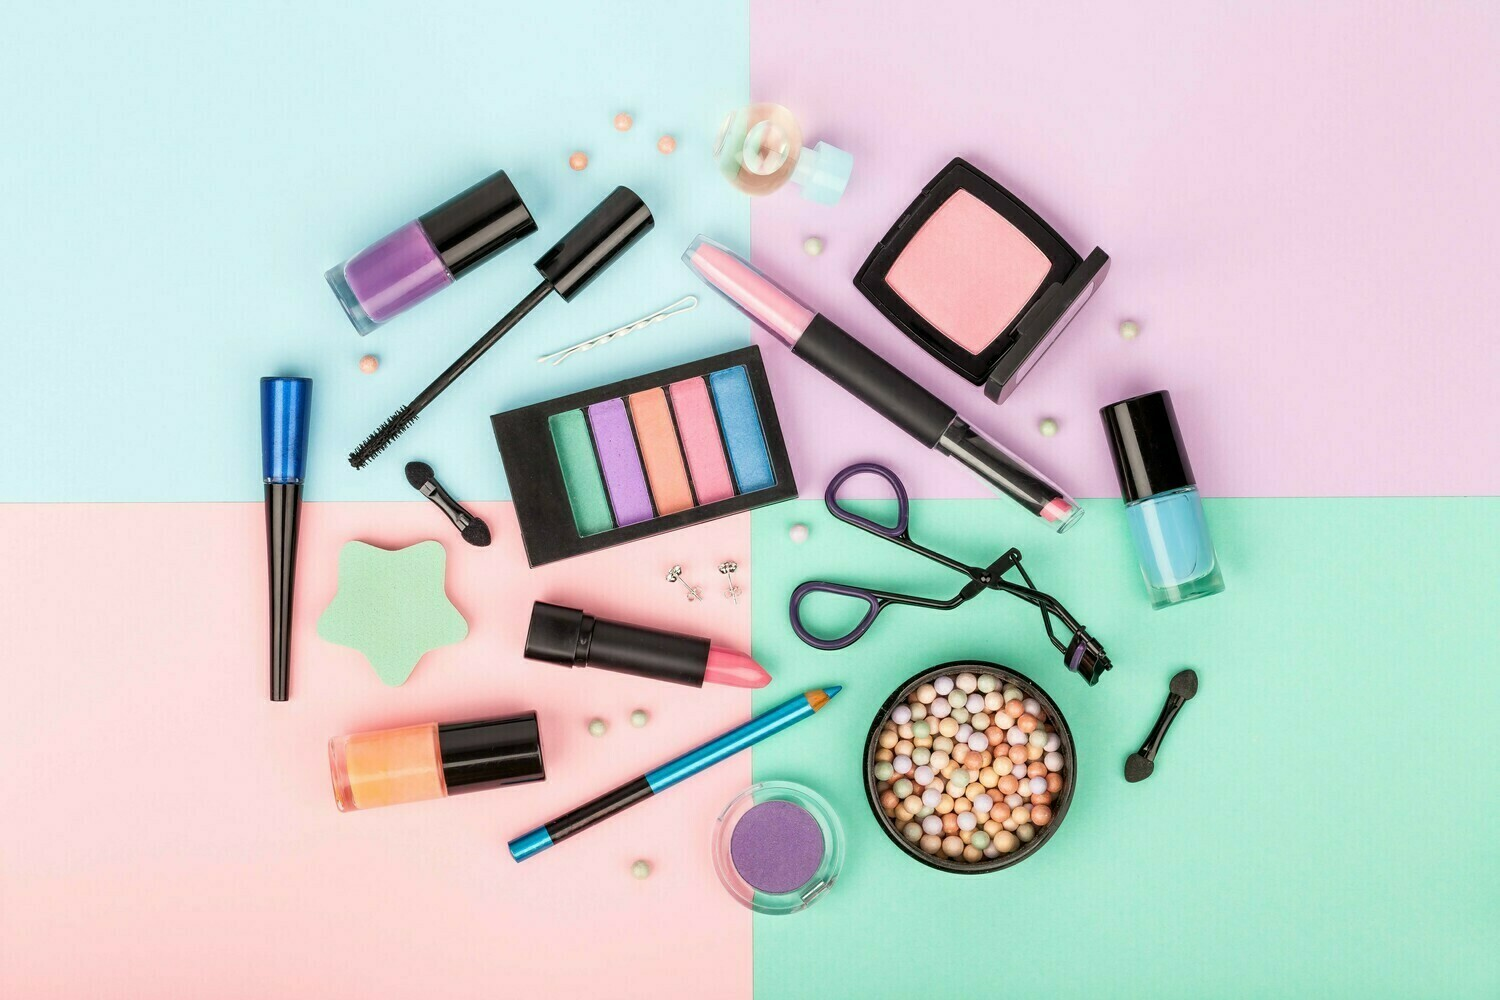 Make Up & Photoshoot Workshop - Kids - School Holiday Workshop - Tuesday 14 July 2020 - 10am to 12pm